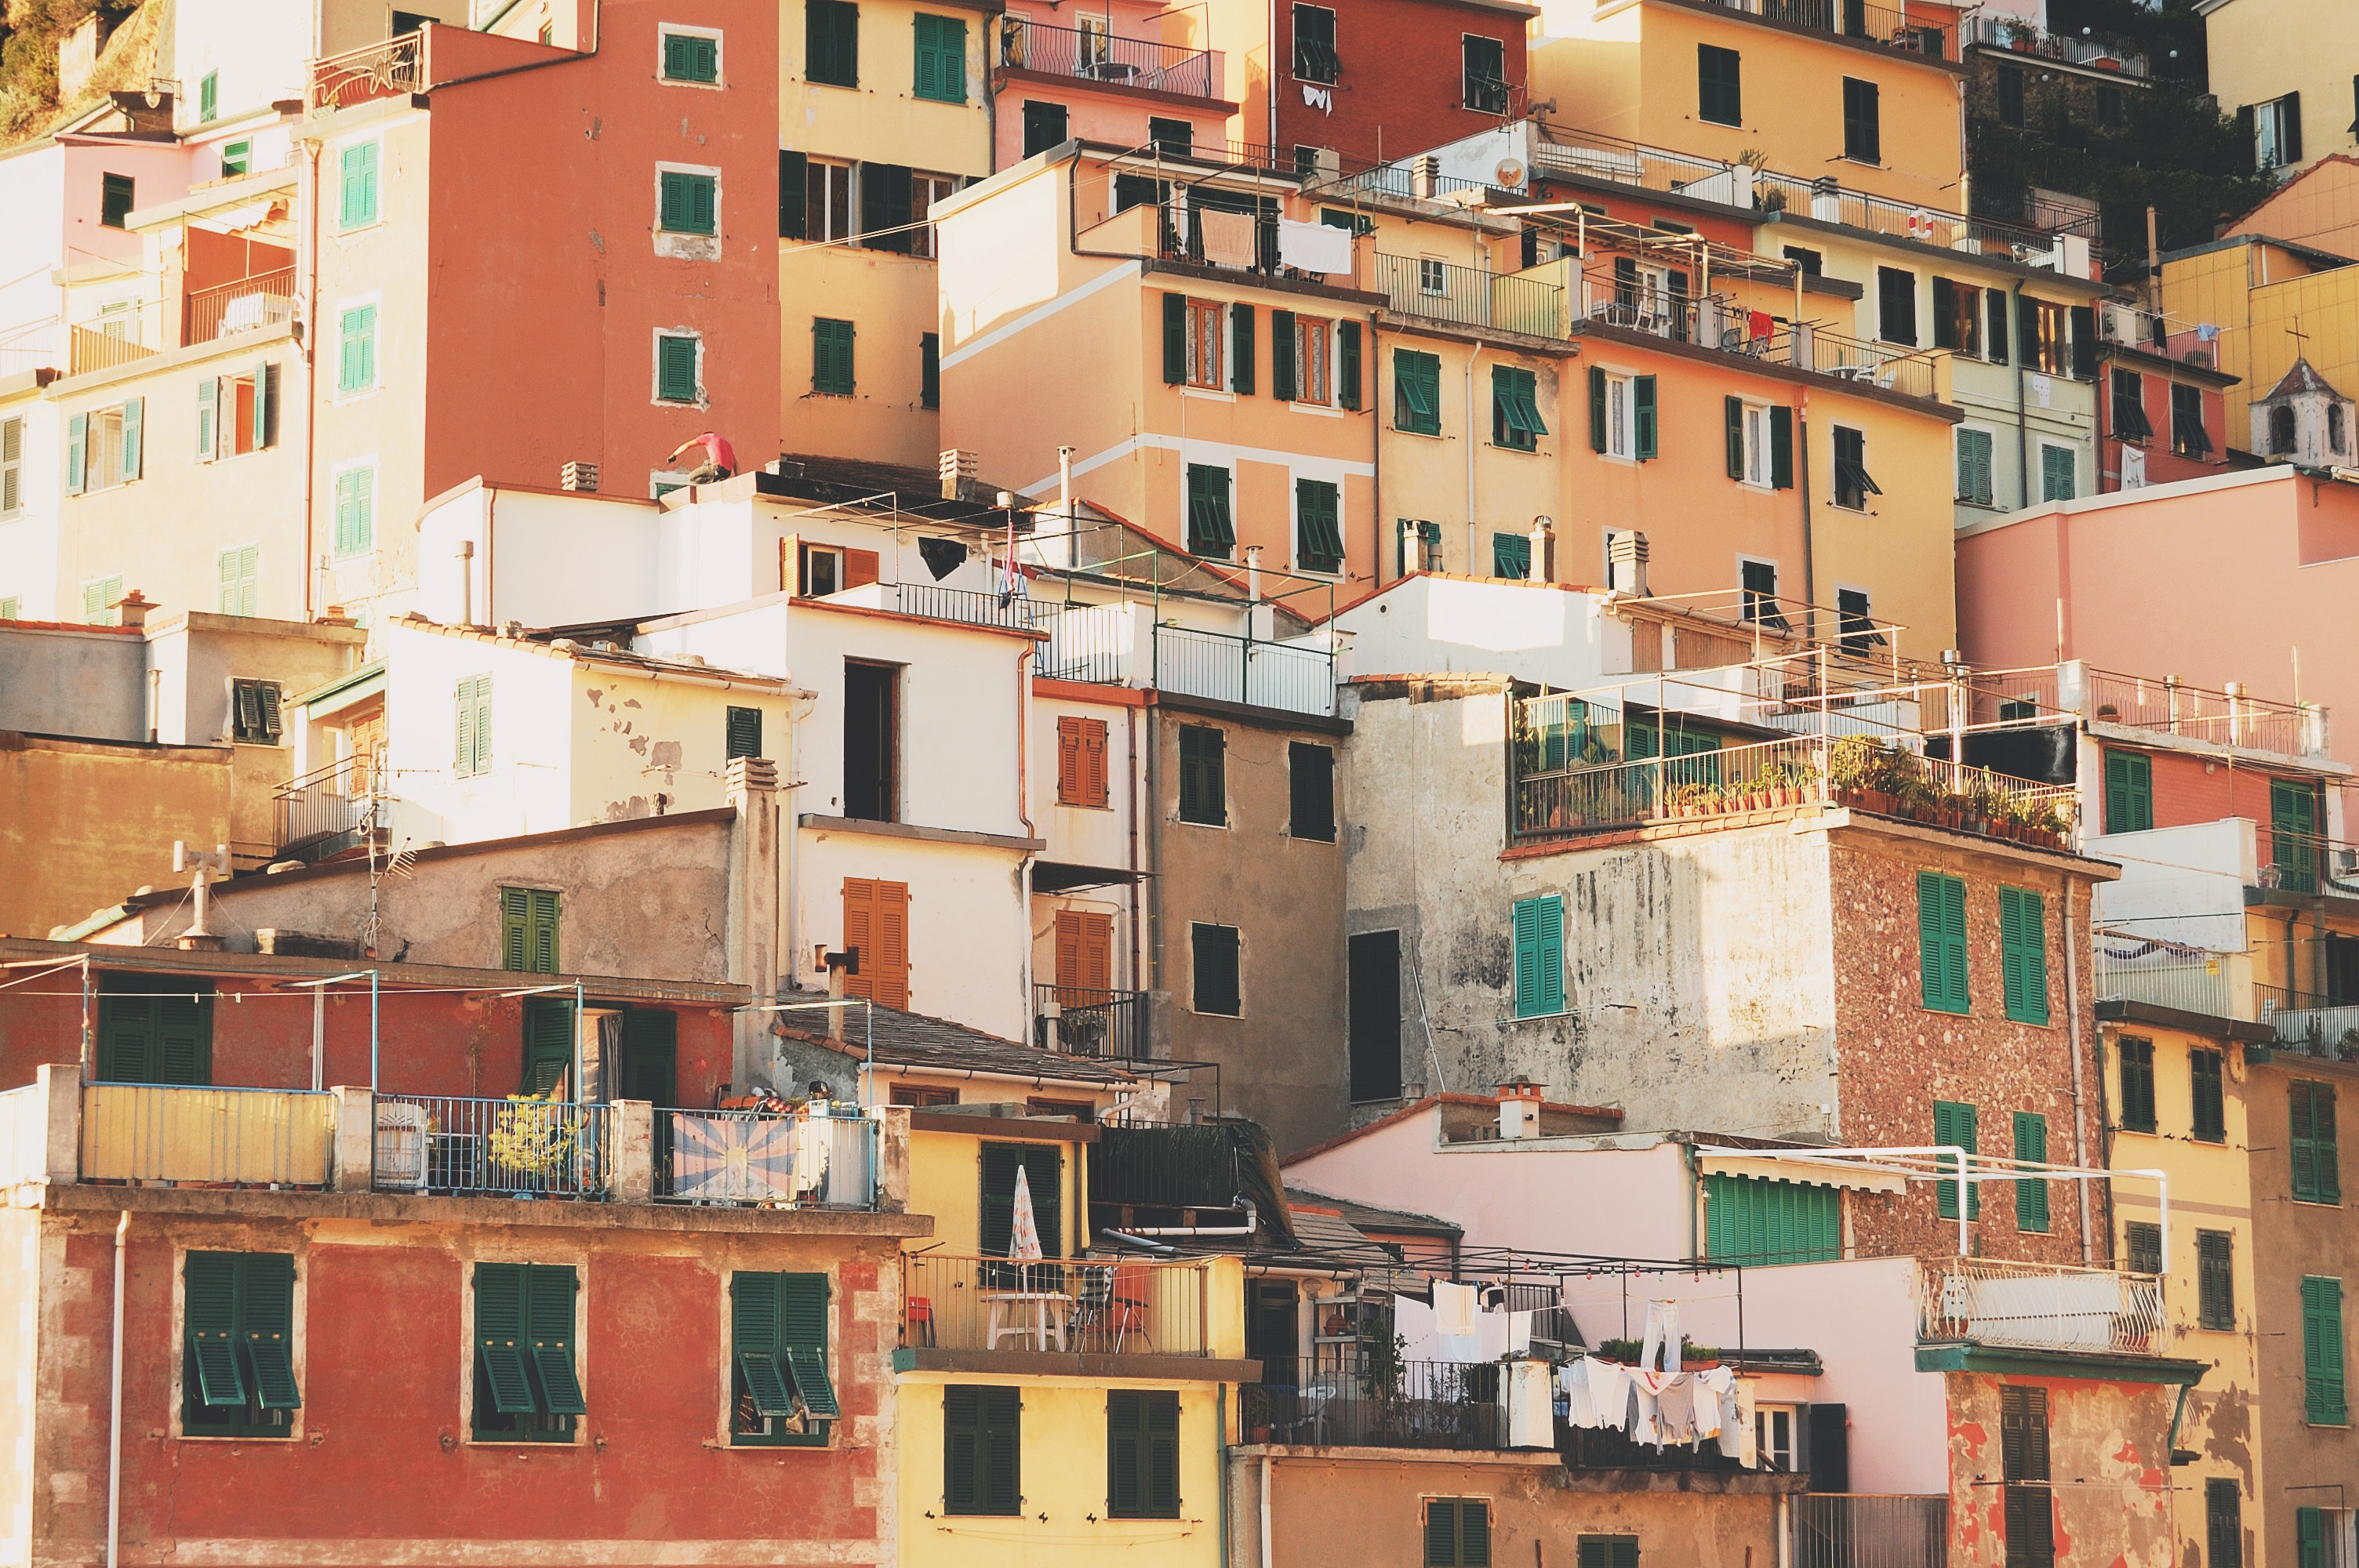 Italy: The housing market recovery